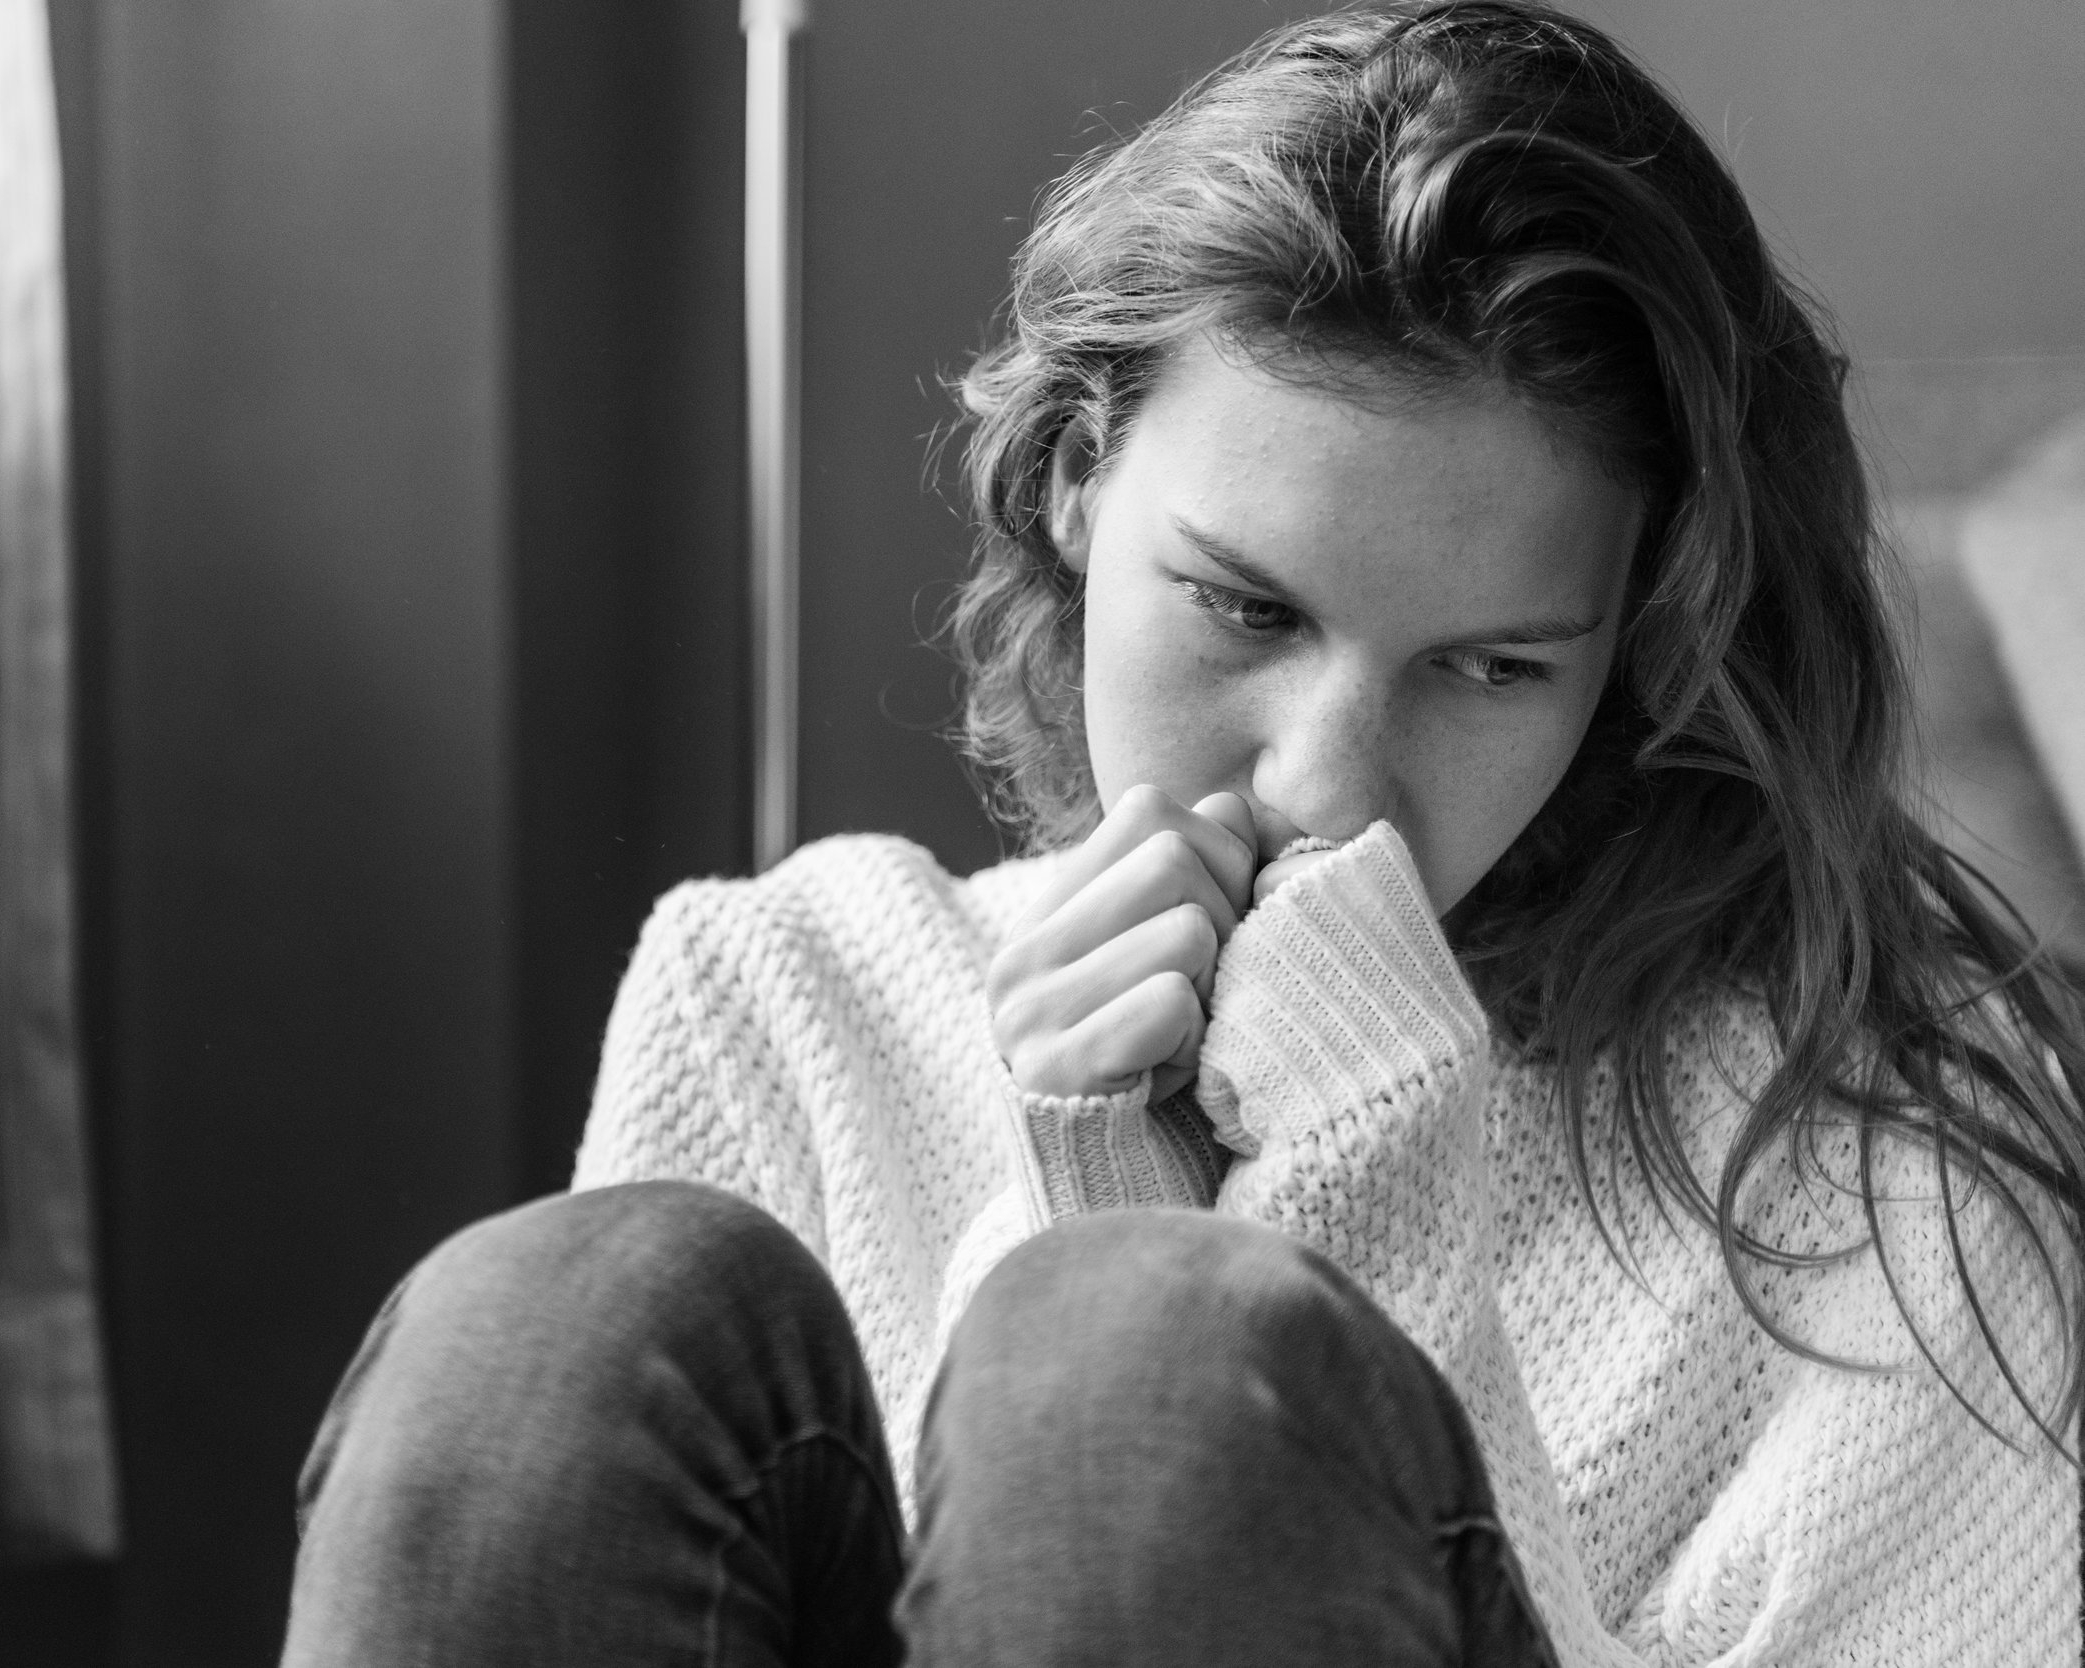 Parenting a Depressed Teenager - When your kids get older, and their problems become more complex you will have to transition into a supporting role. Here's some tips on how to be supportive while as they to get older.childmind.org